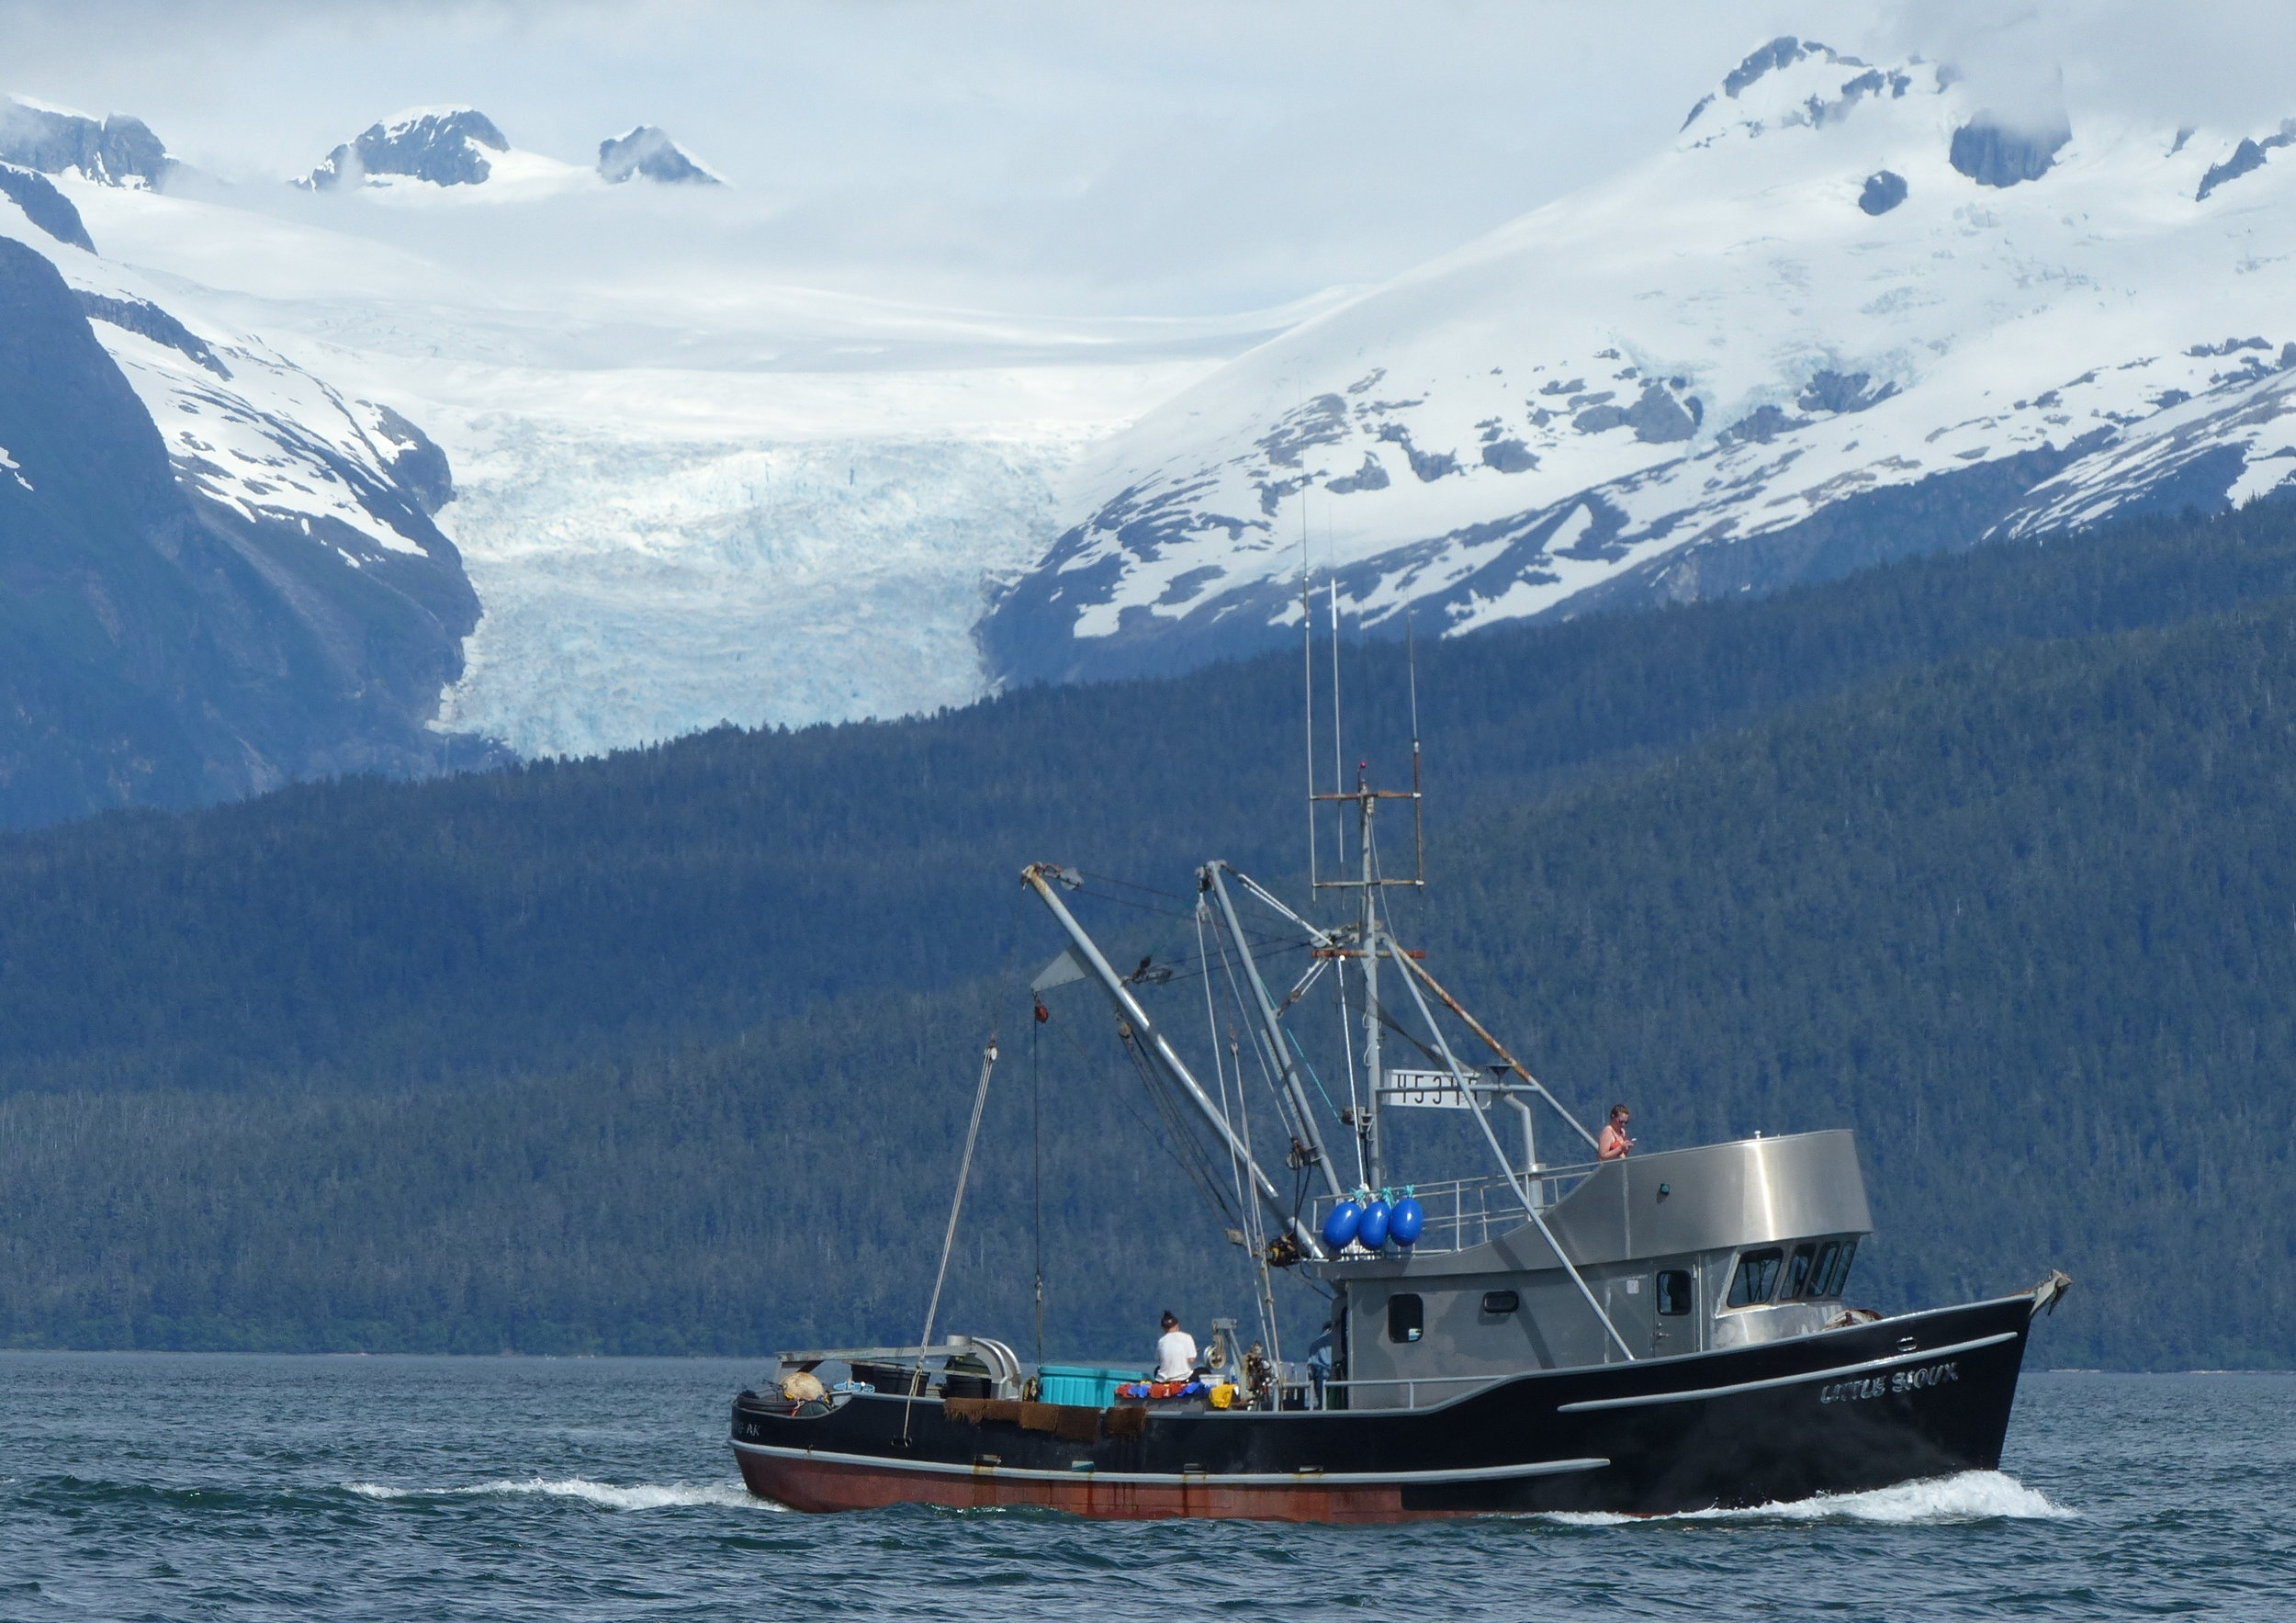 SE Alaska Fishboat - Switching to renewable clean fuels would help protect the fish and improve their habitat (Photo by P Wilcox)